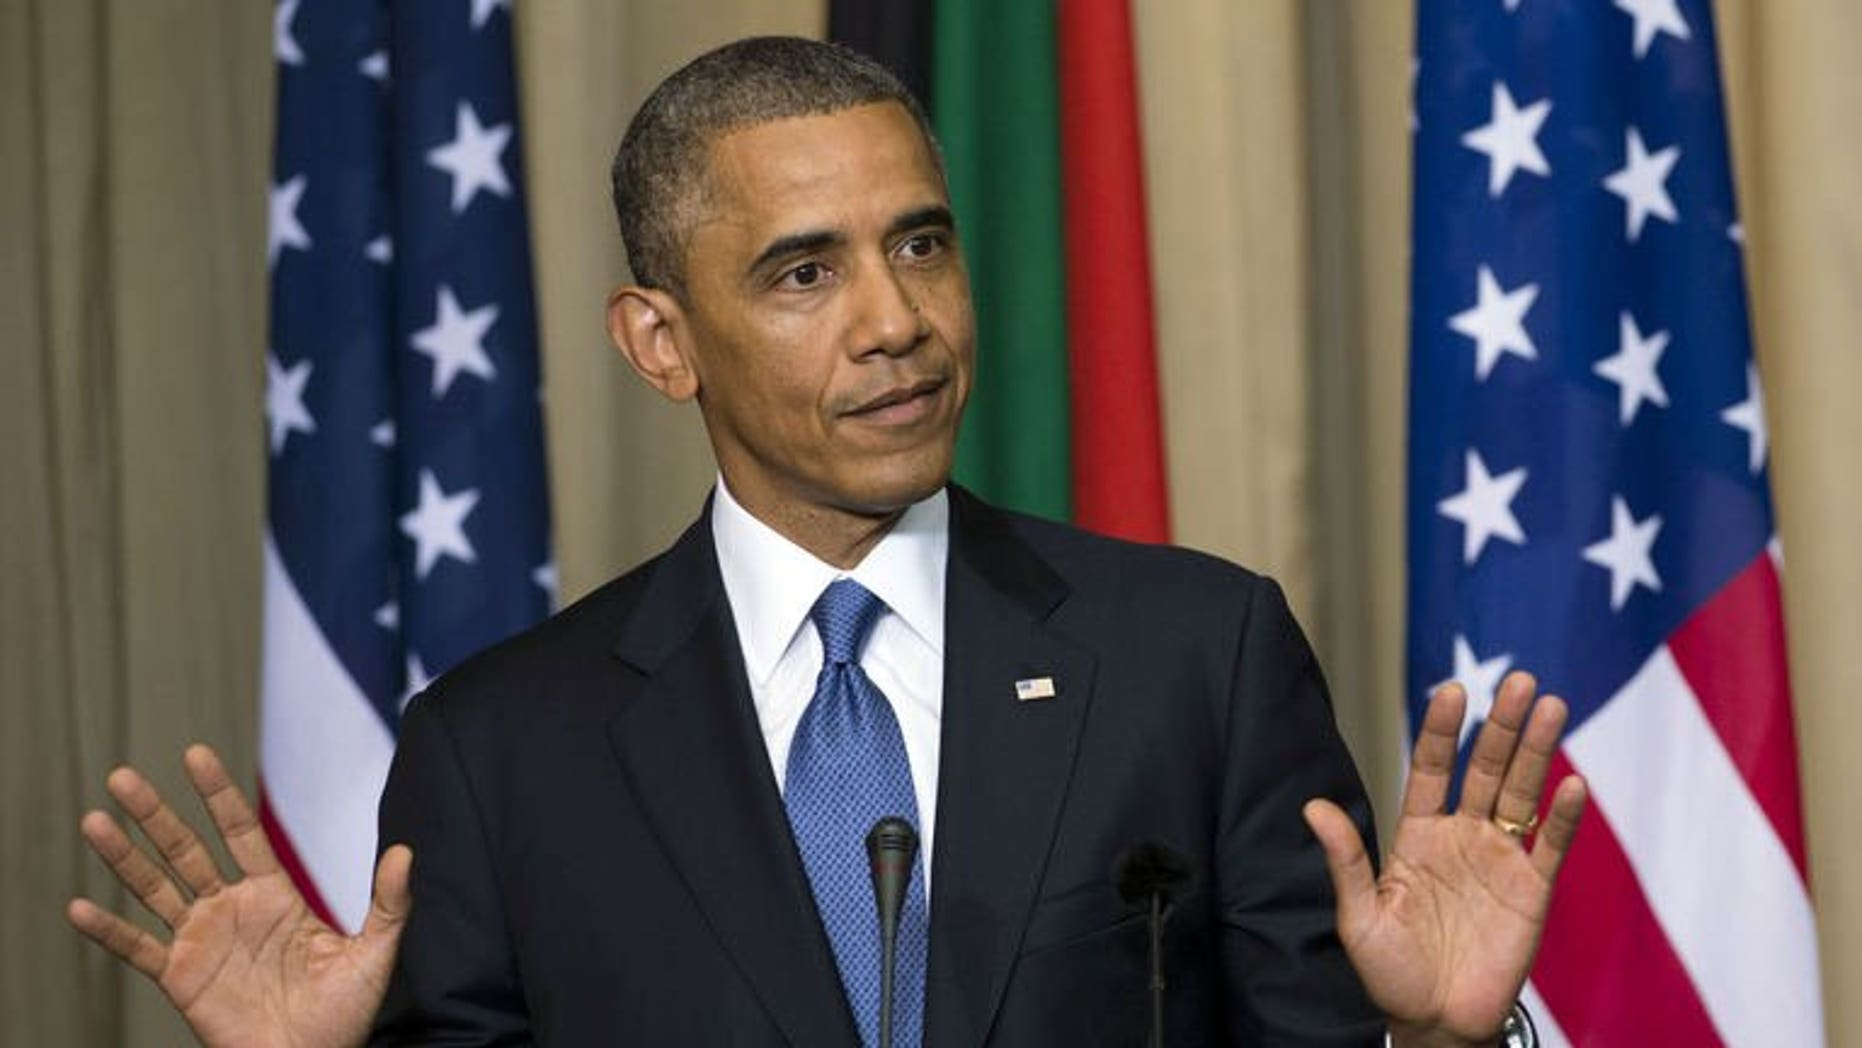 US President Barack Obama addresses a news conference in Pretoria, South Africa, on June 29, 2013. Obama has urged Africans to ask more questions about lop-sided deals with some foreign investors, while dismissing talk of a Chinese and US scramble for influence on the continent.